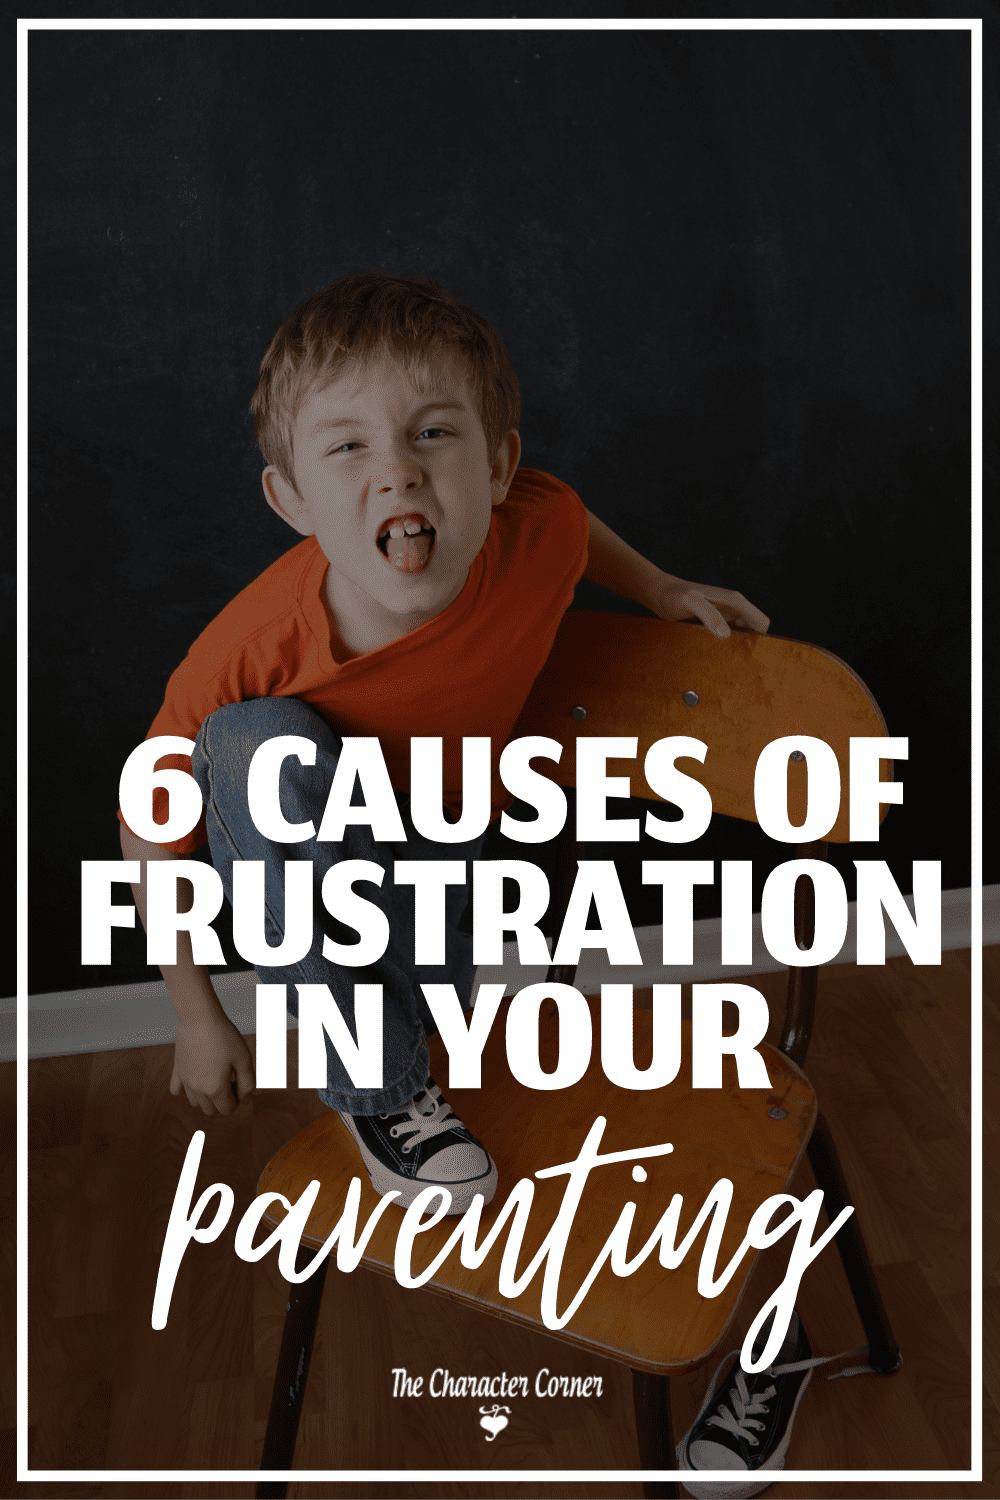 young boy sticking out tongue on chair text on image reads Causes of Frustration in Parenting